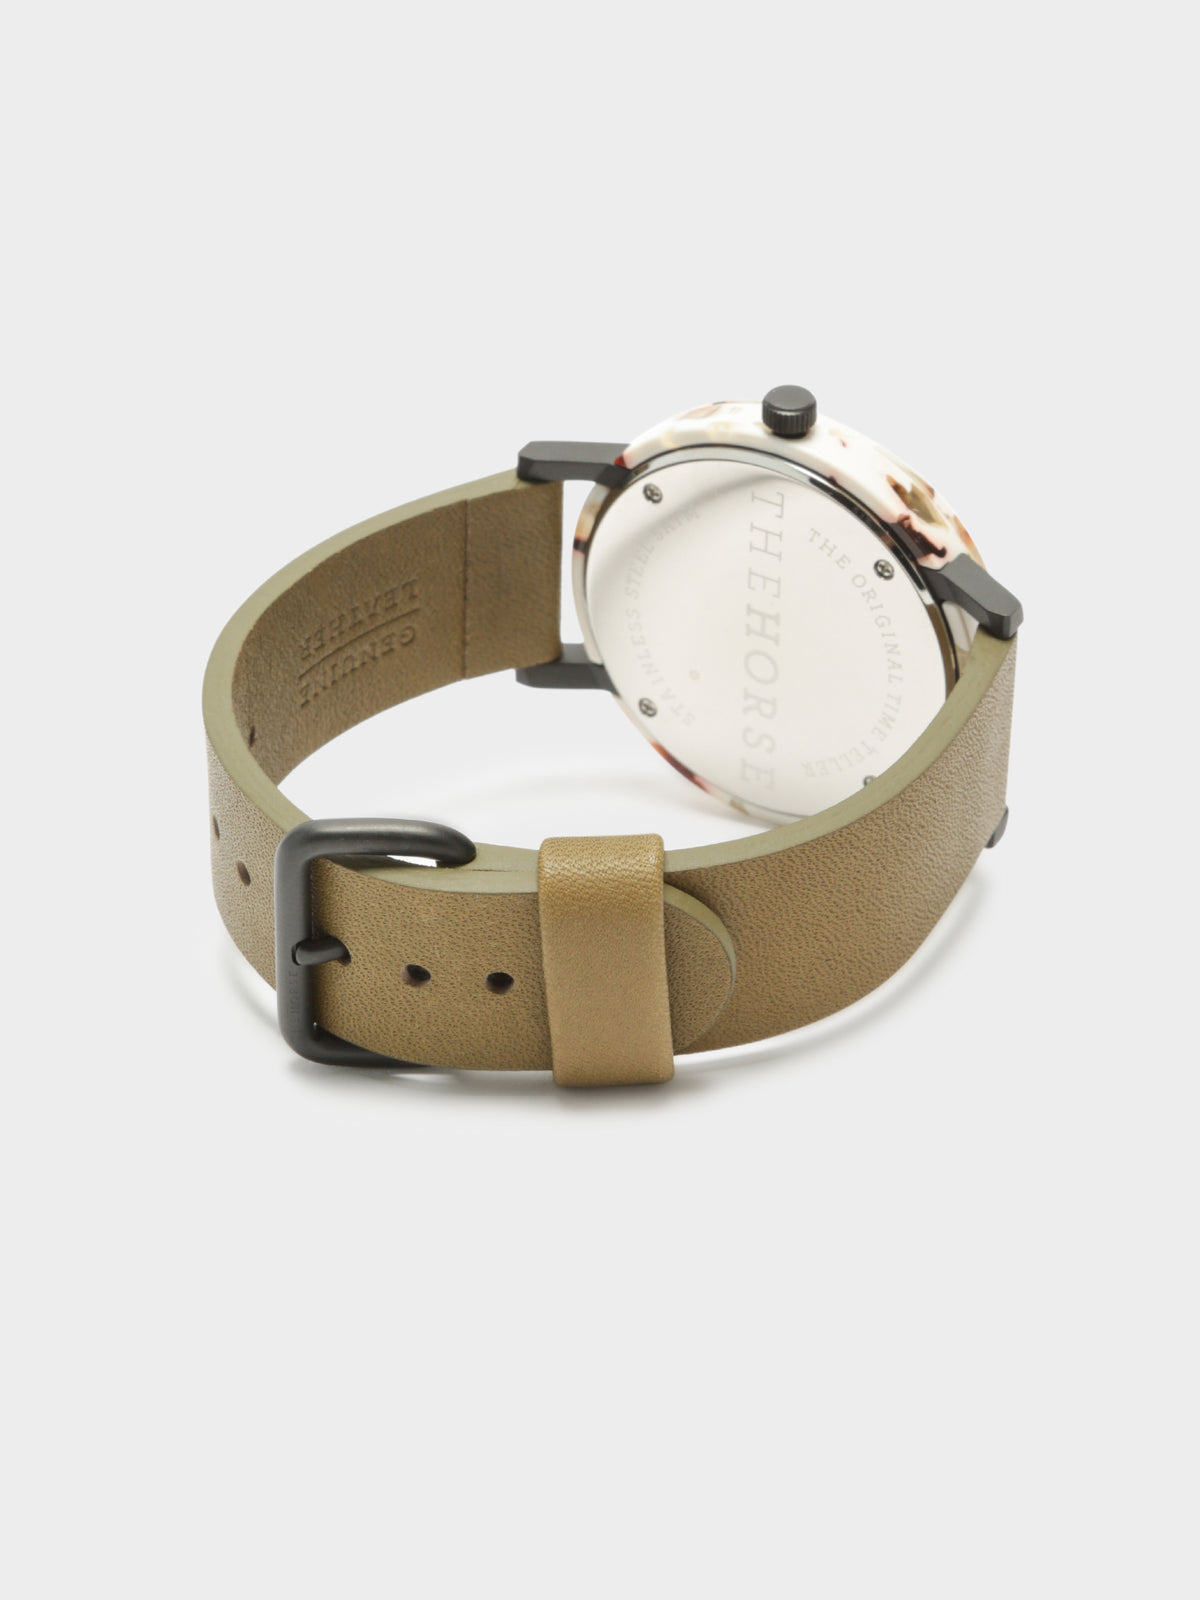 The Resin Watch in Nougat Shell & Olive Leather Strap